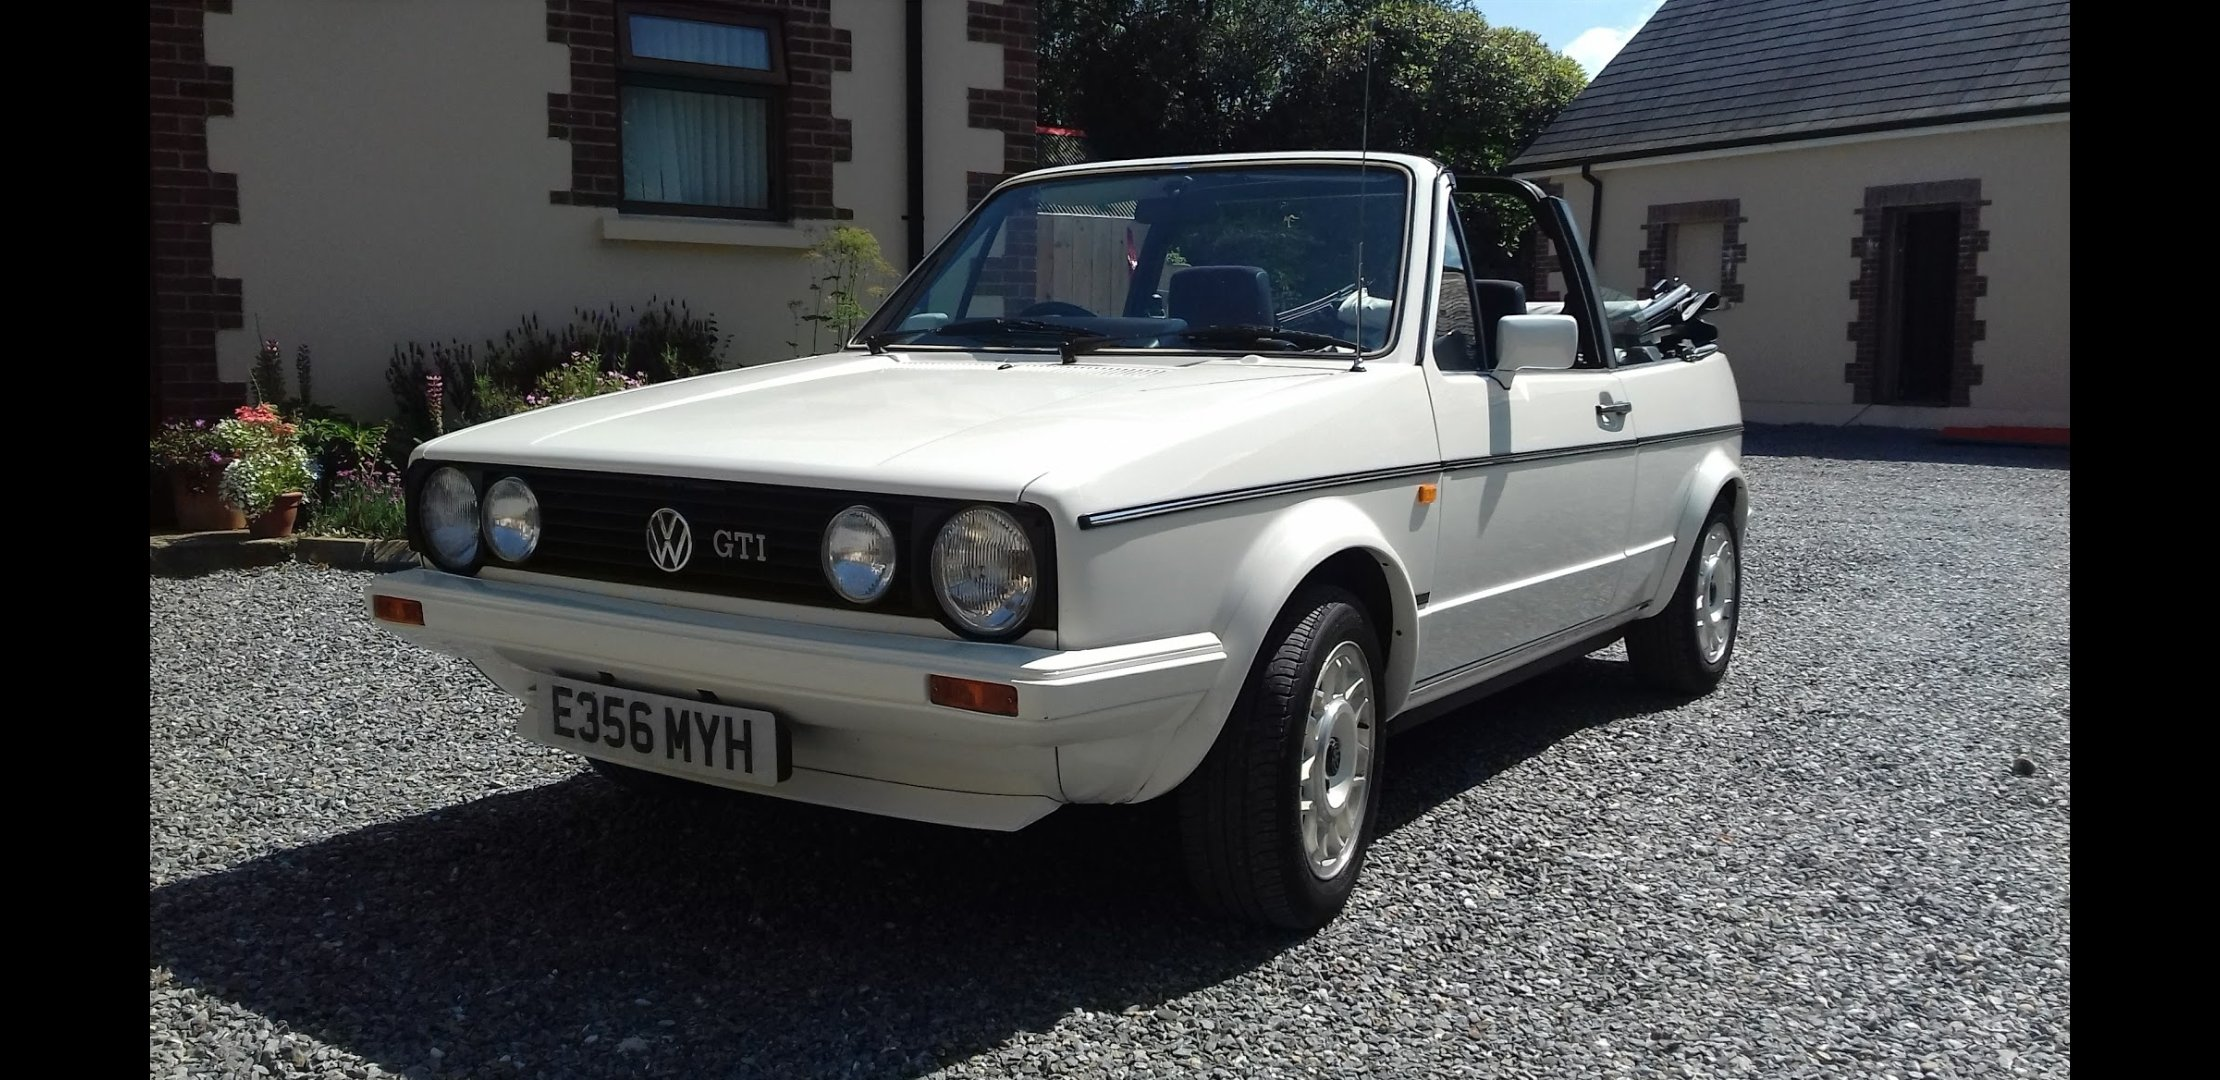 1988 VW Golf GTI Cabriolet  For Sale (picture 2 of 6)